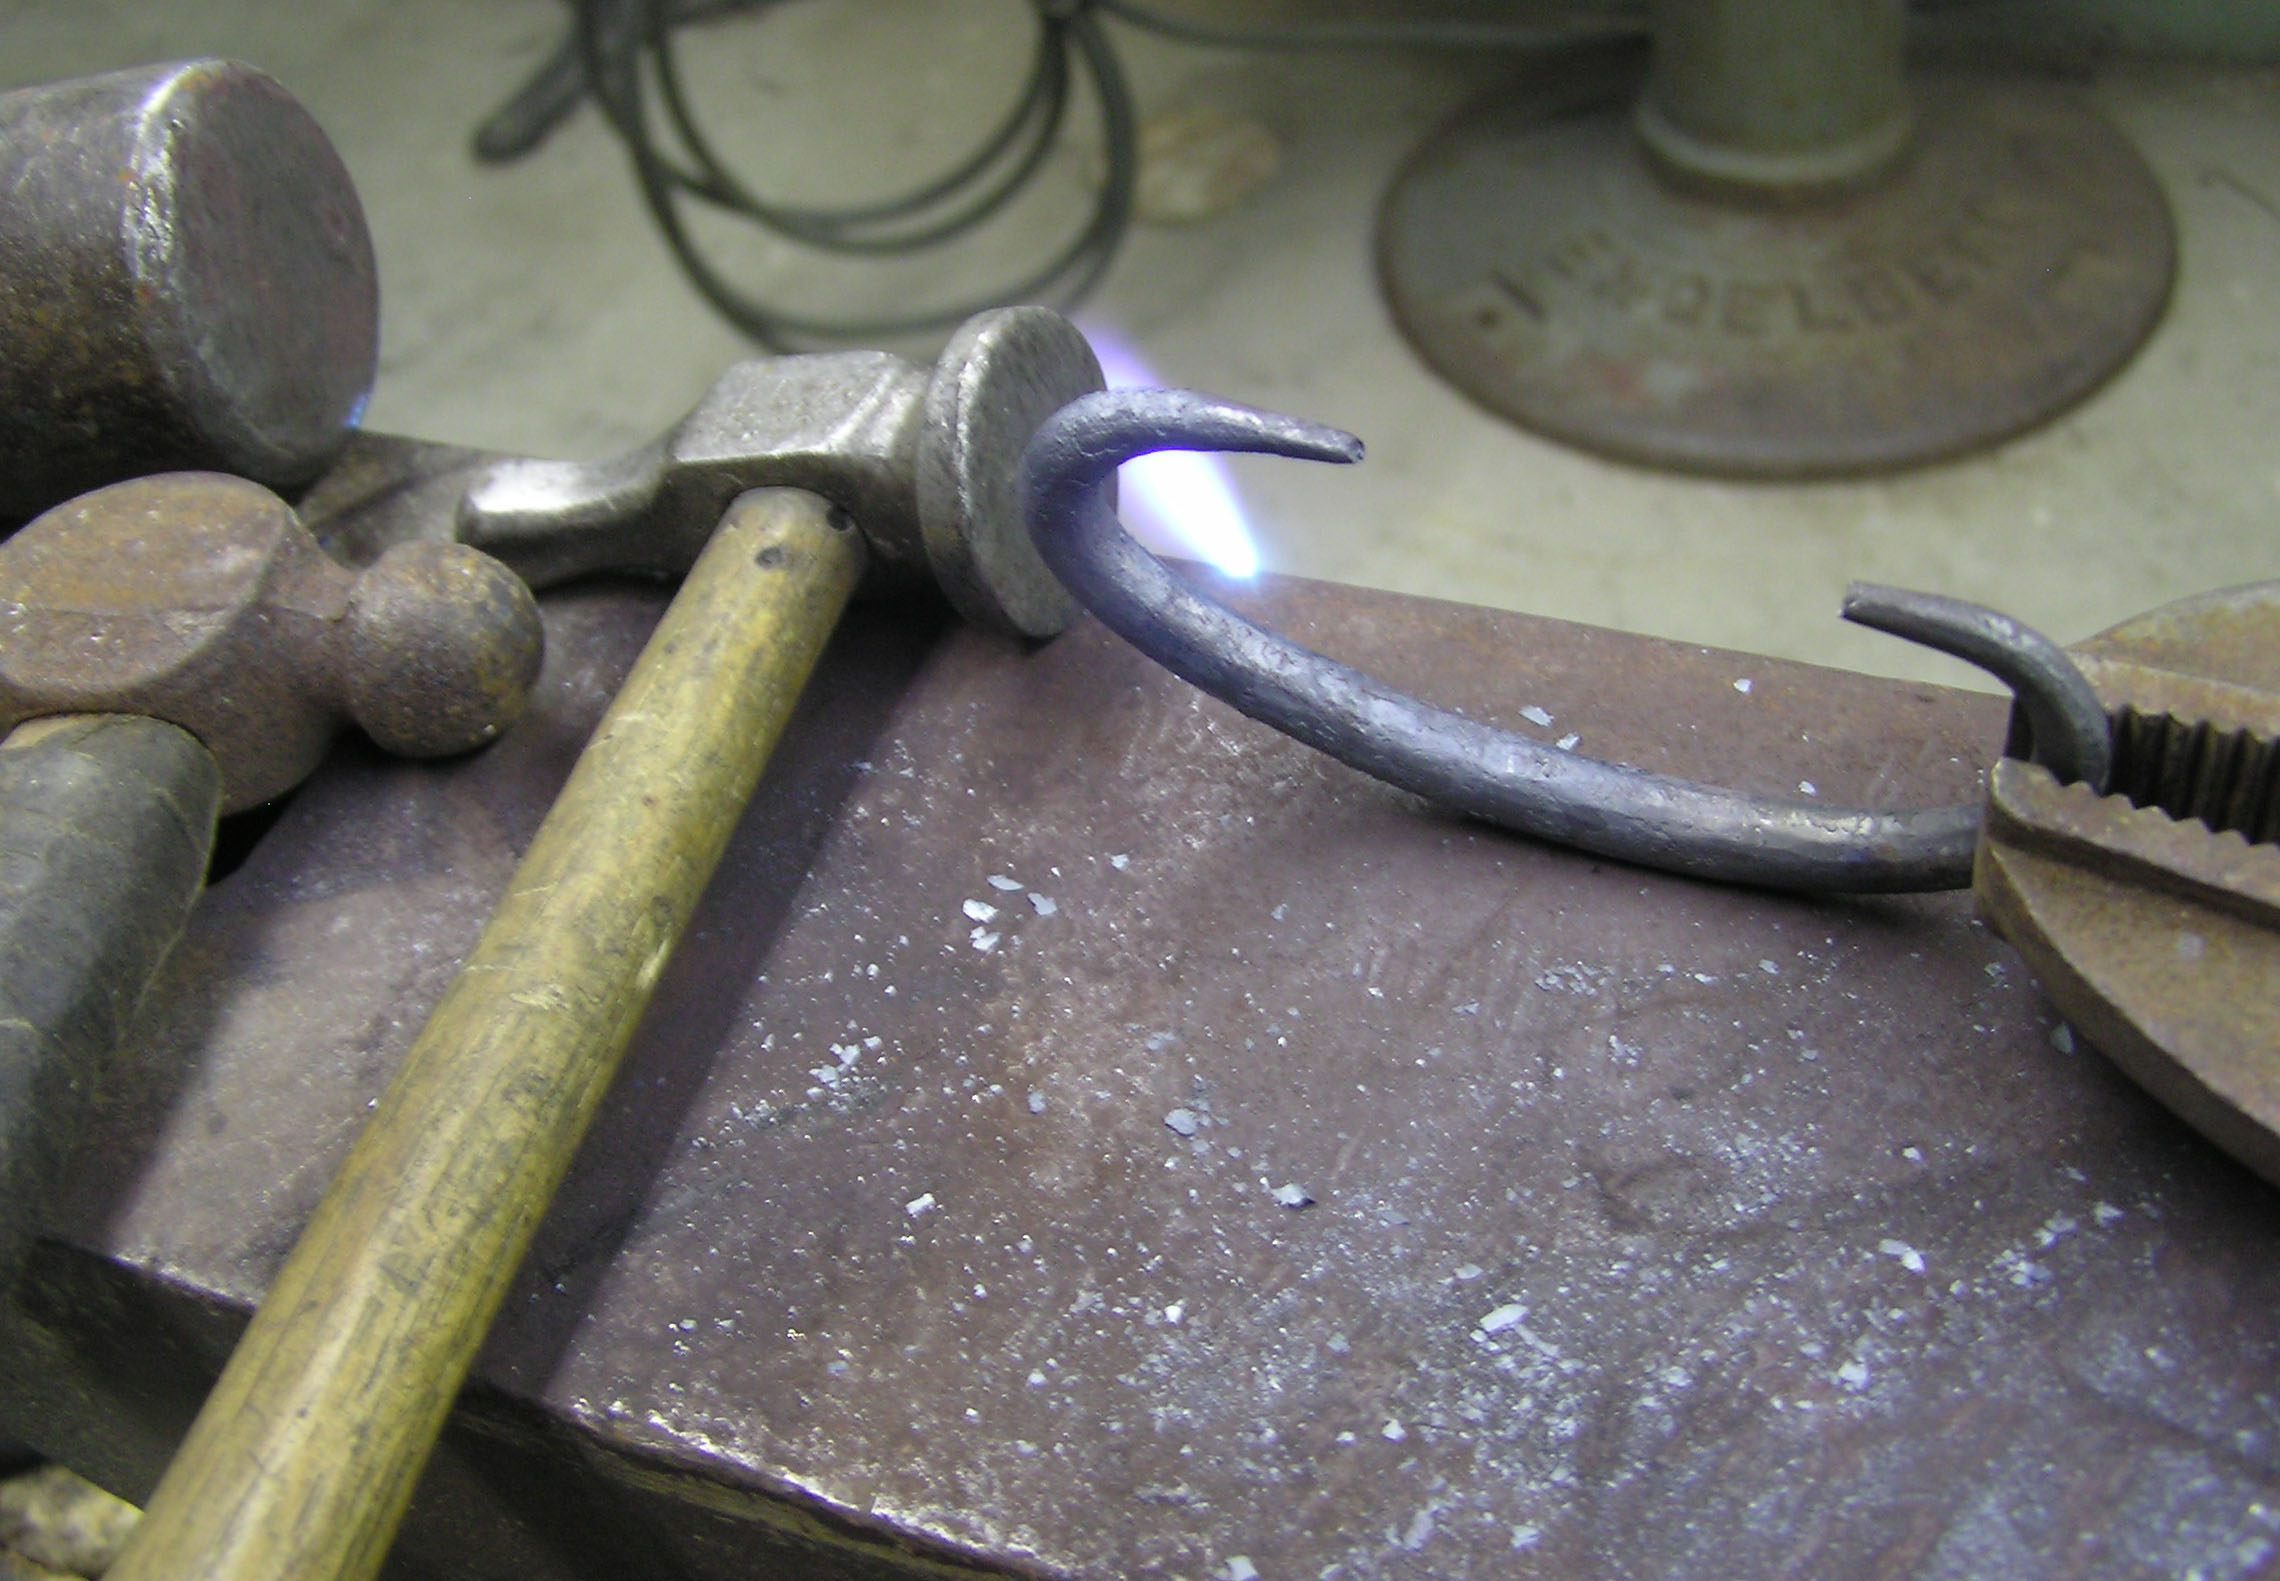 New handle being wrought